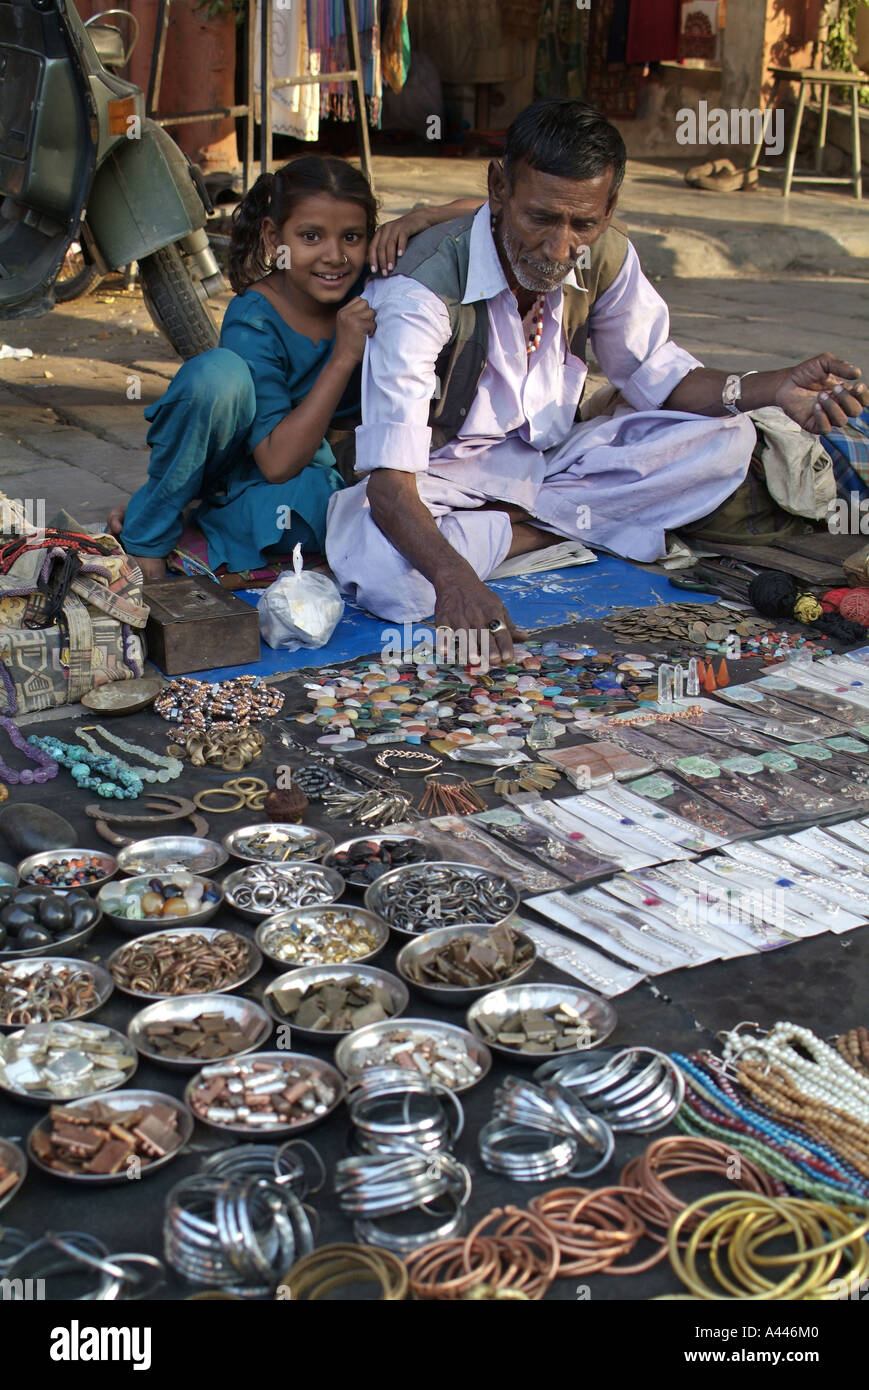 Street vendor selling jewellery in Jaipur India Stock Photo